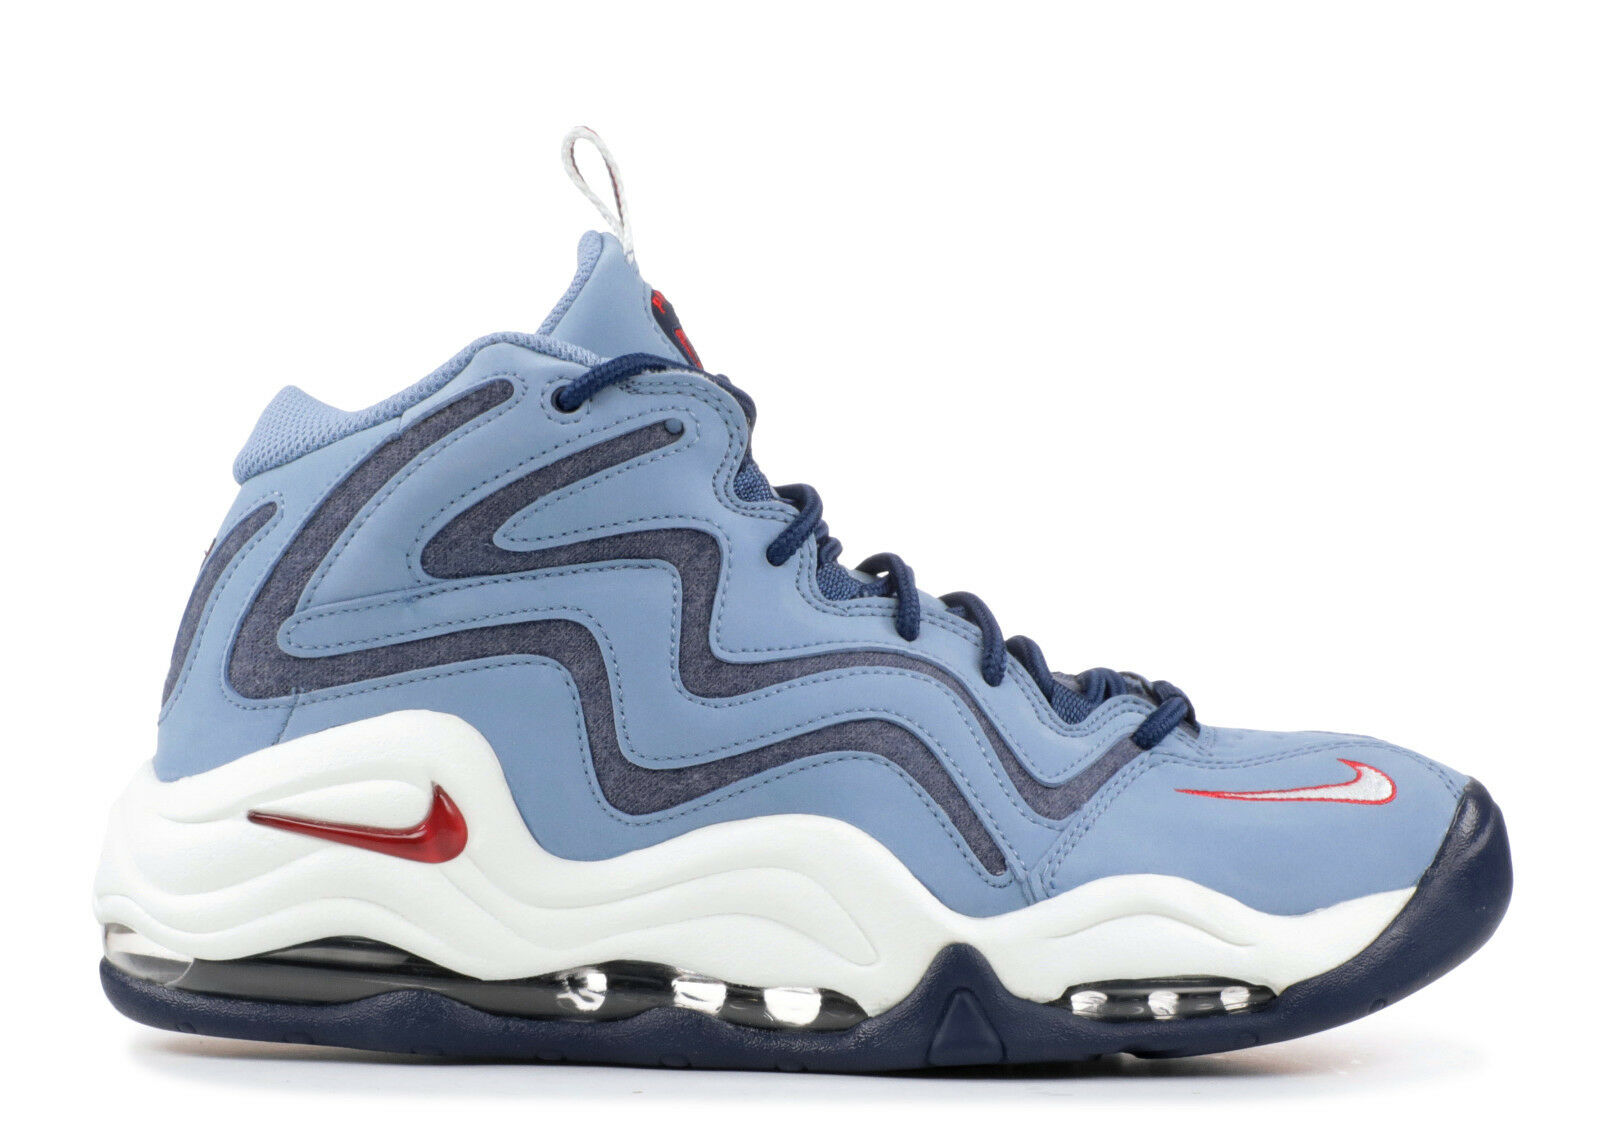 Nike Air Pippen Work Blue University 325001 403 size 10-15 Basketball Shoes